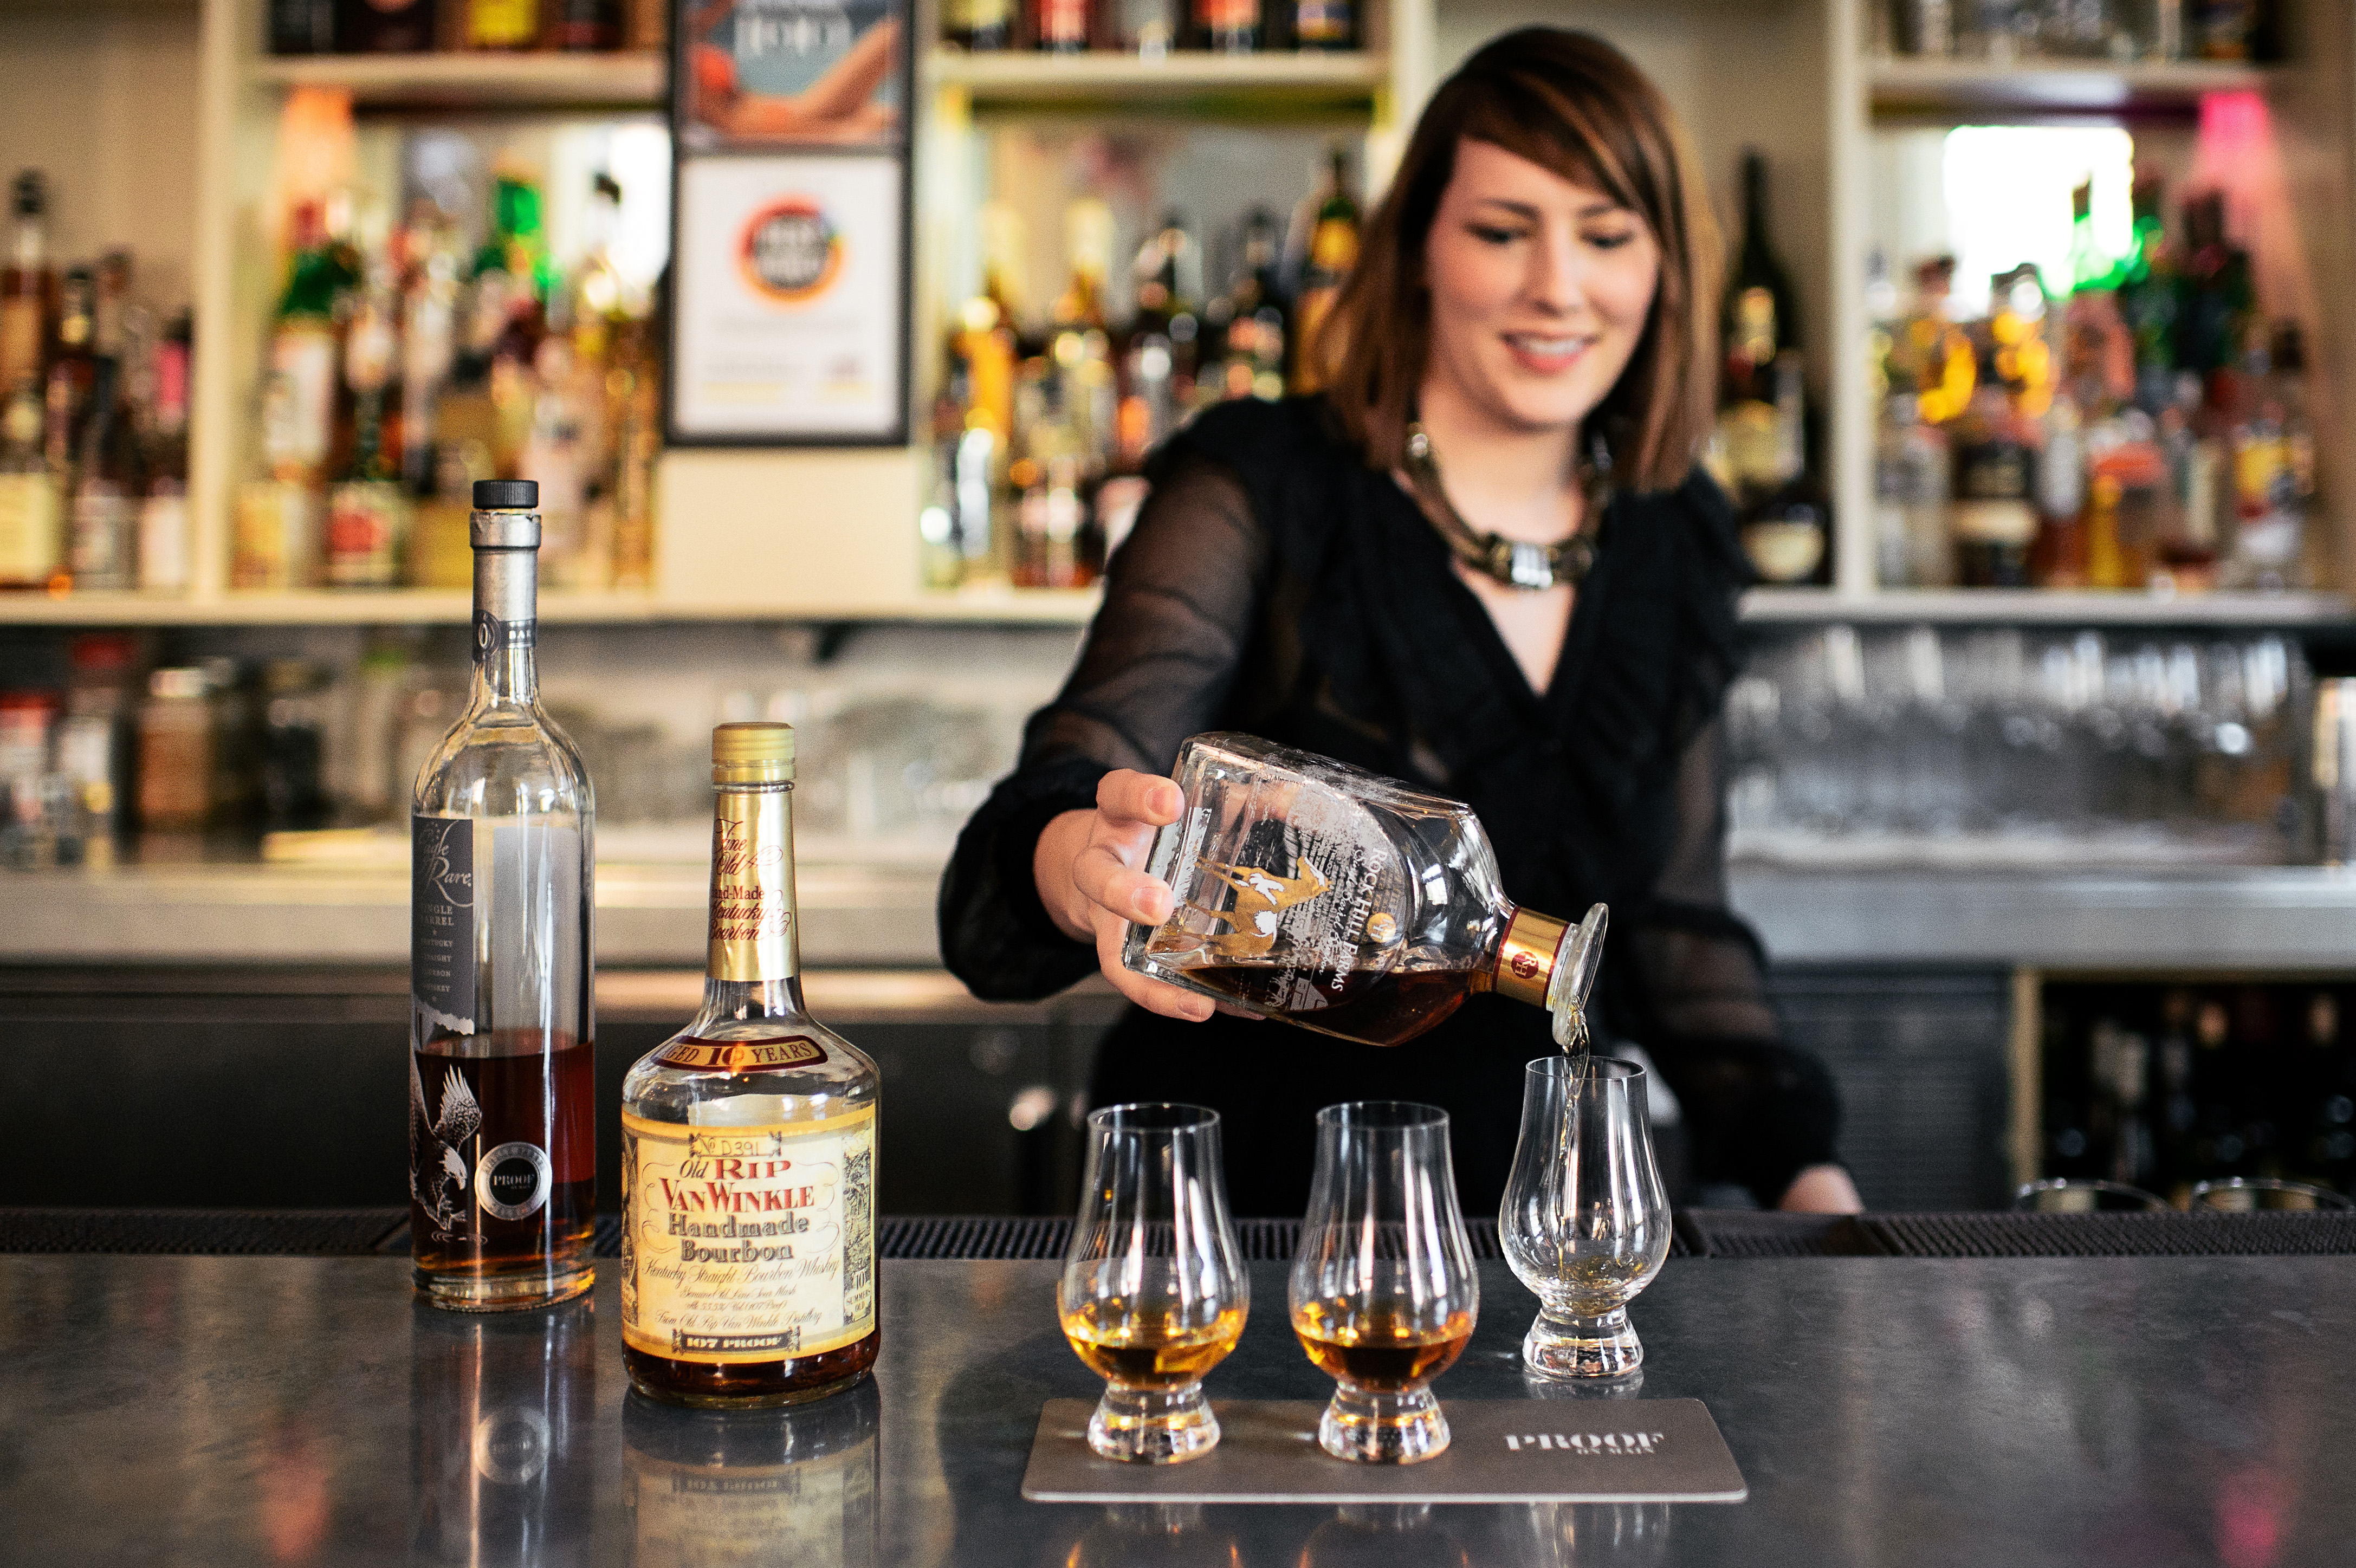 Barrel House American Bar Bringing the Whiskey Spirit to